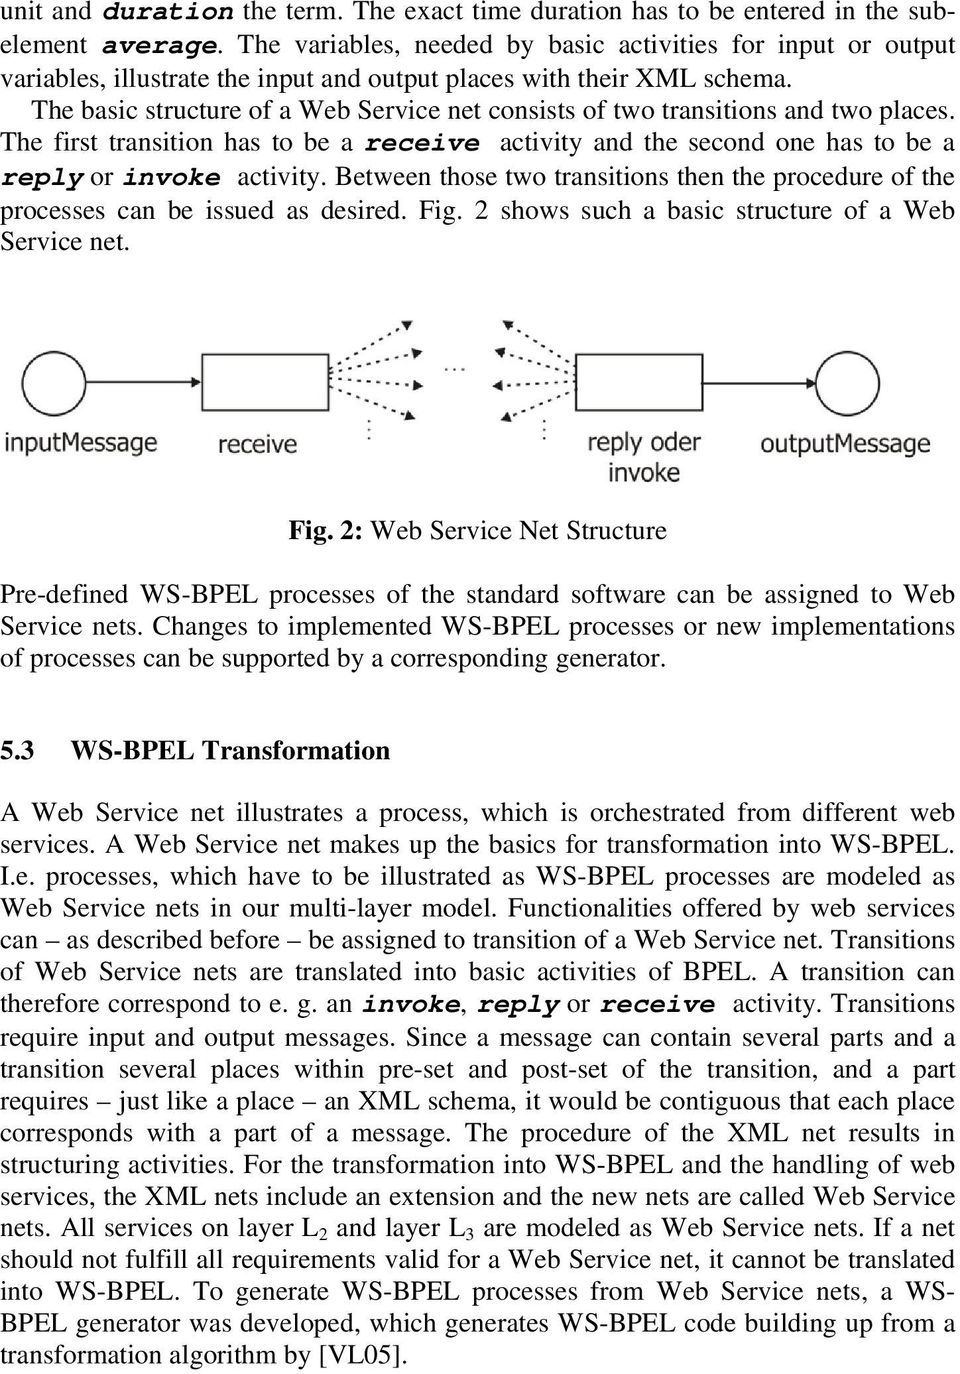 The basic structure of a Web Service net consists of two transitions and two places. The first transition has to be a receive activity and the second one has to be a reply or invoke activity.